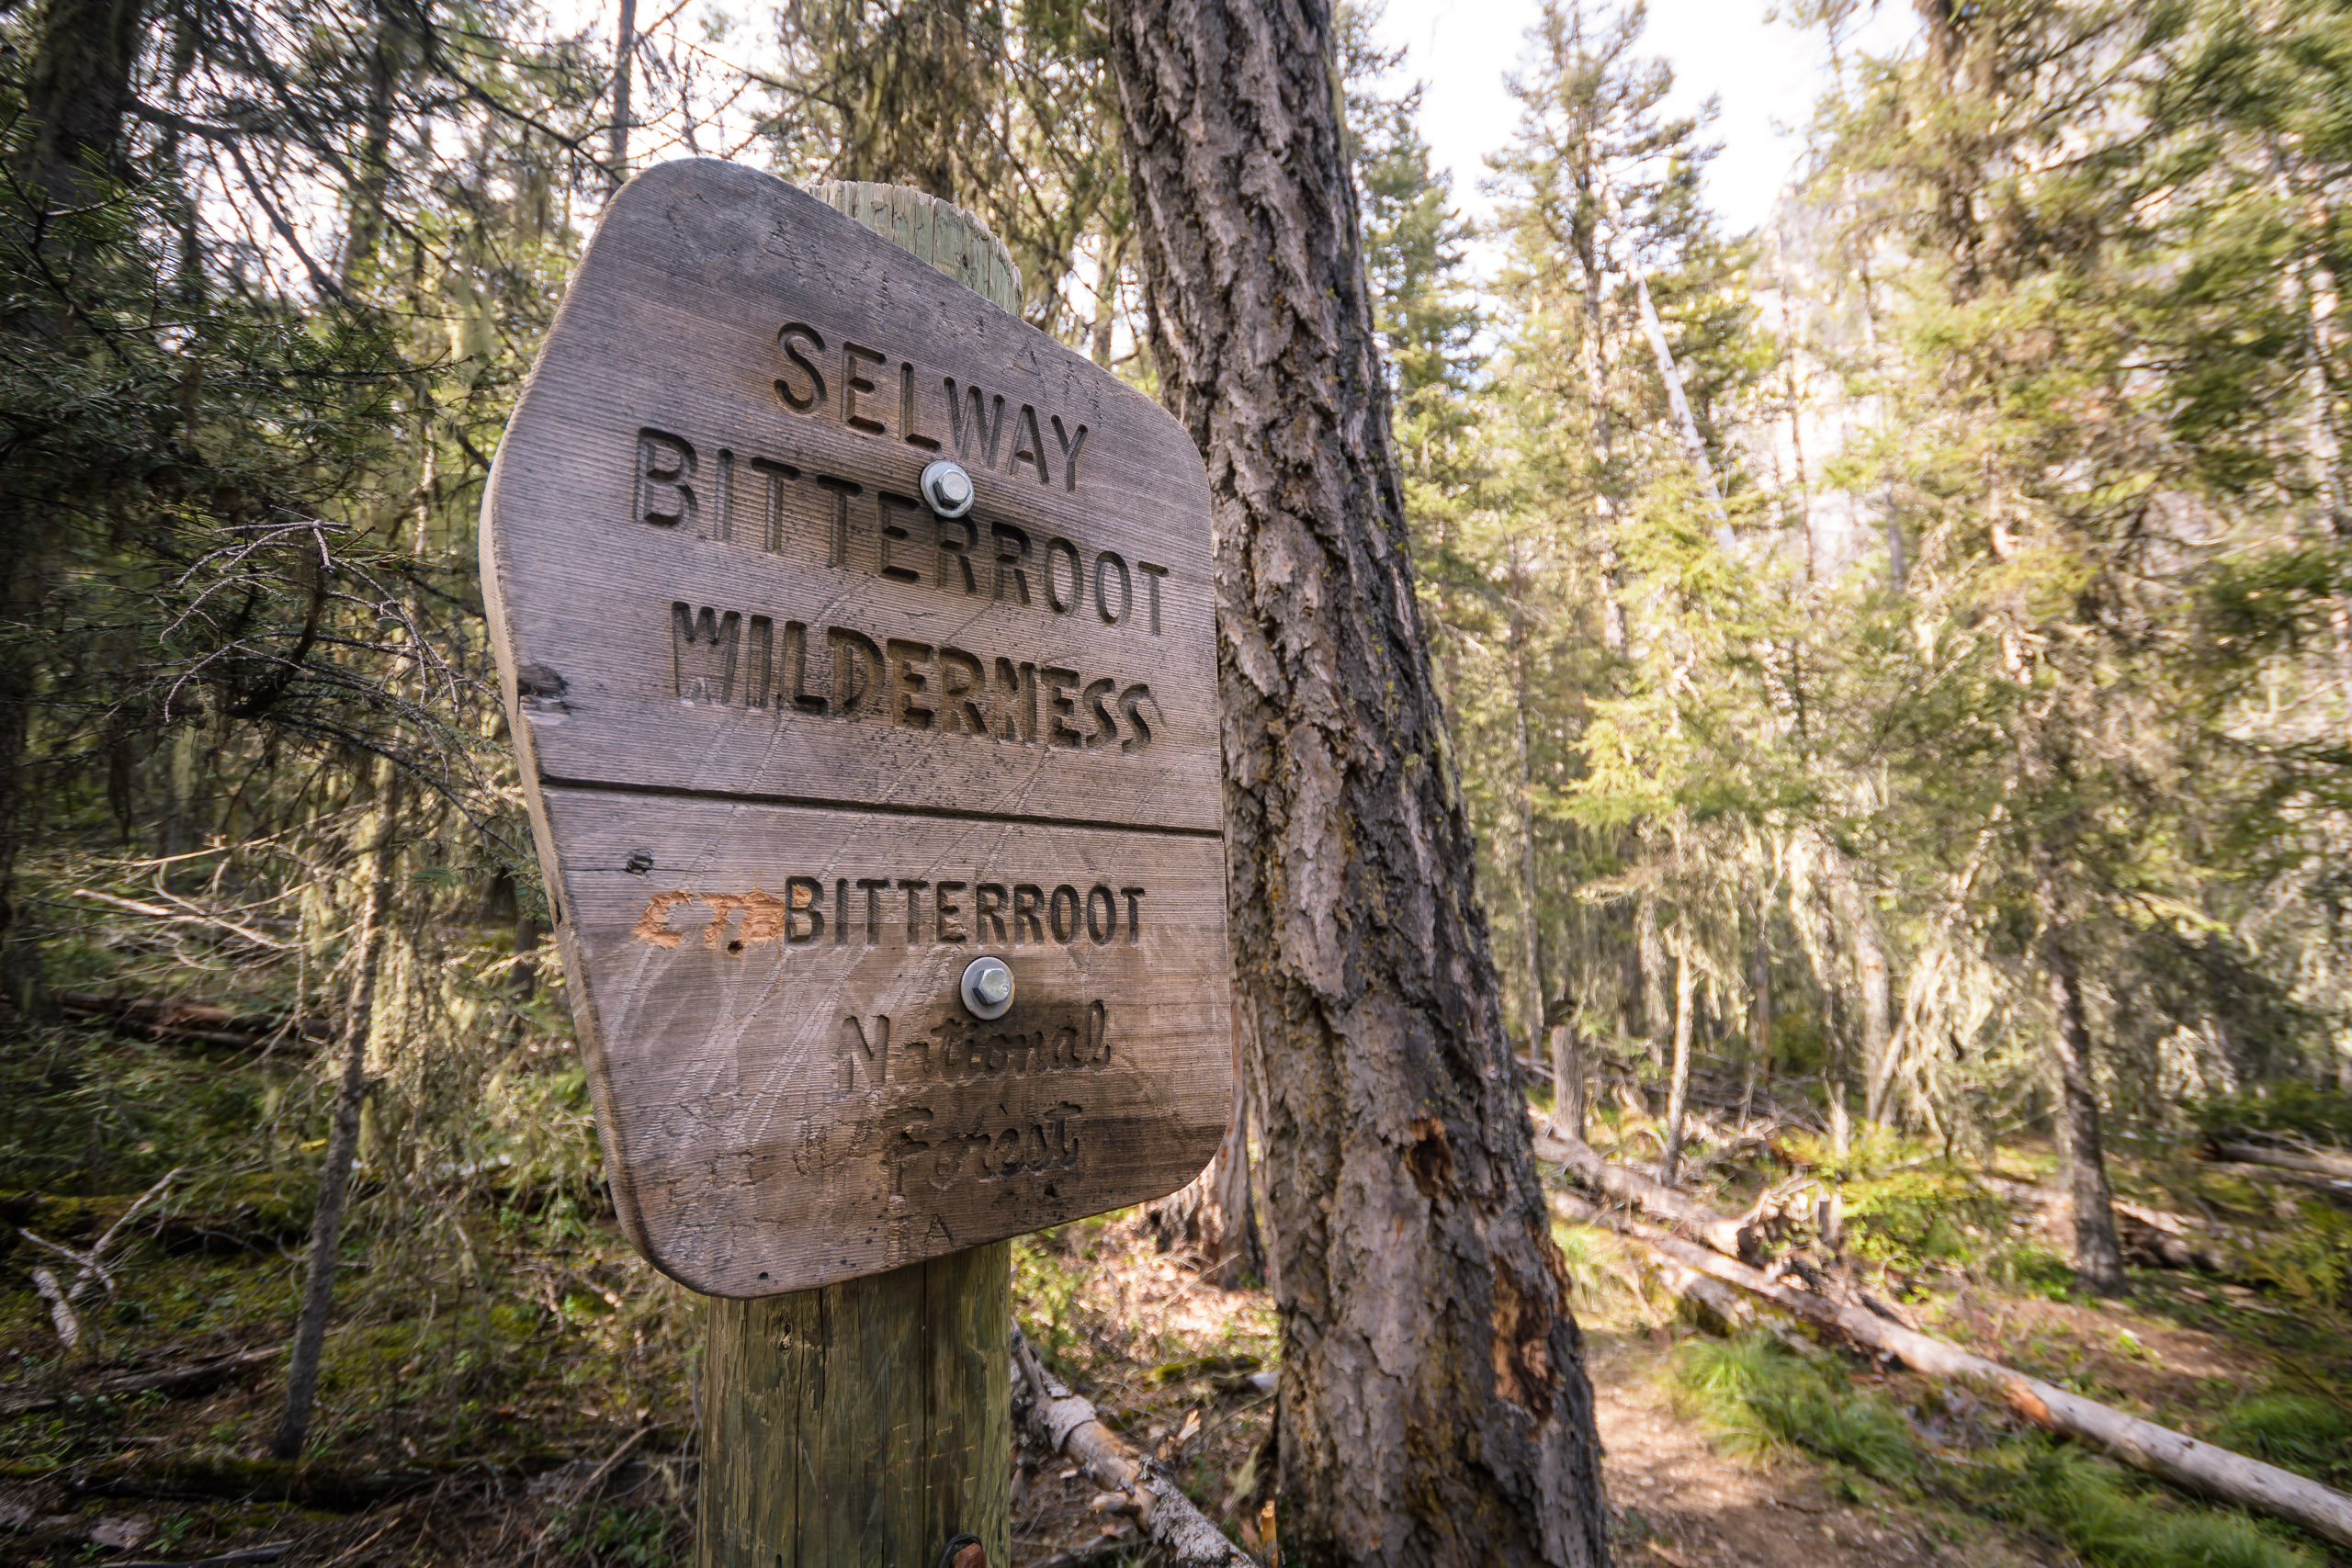 Always a welcome sign, entering the Selway-Bitterroot Wilderness